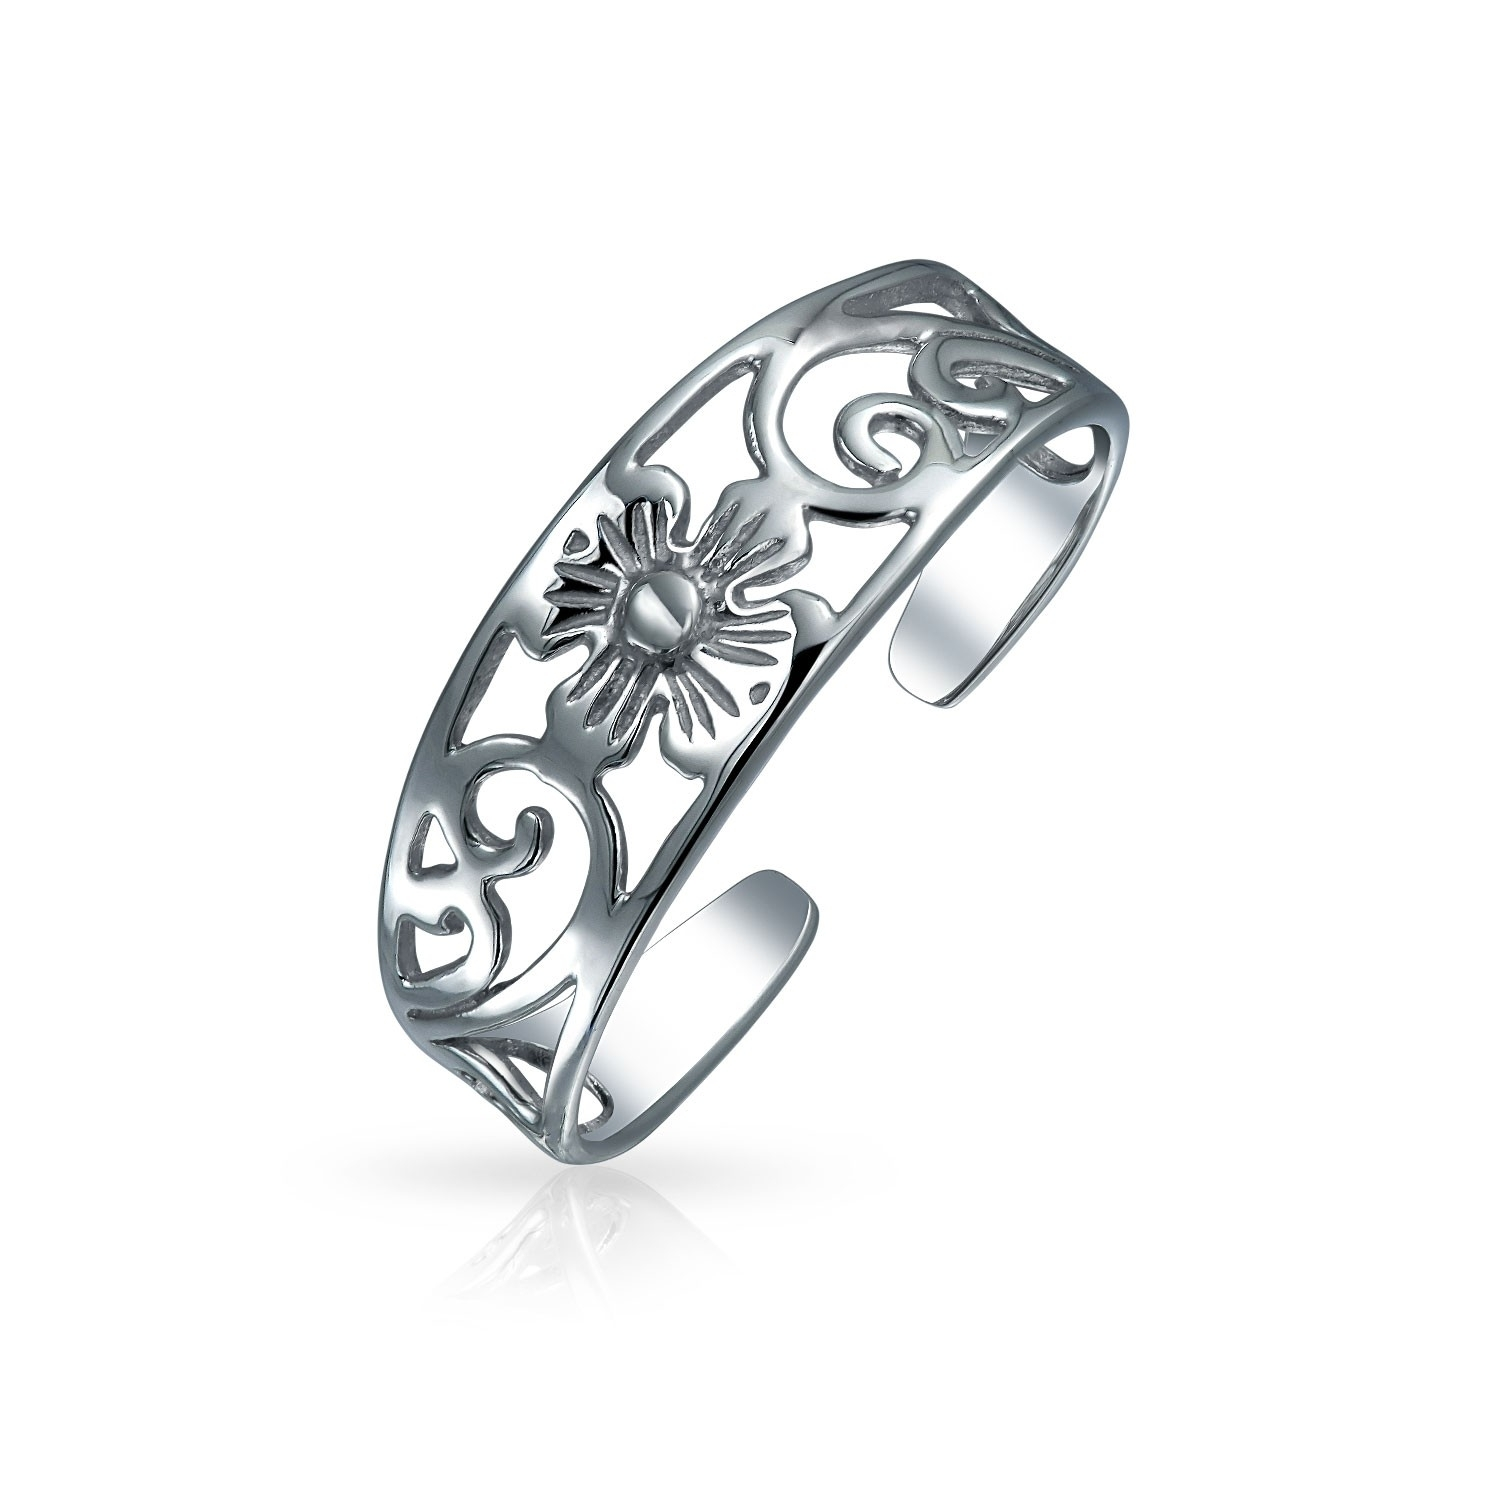 Adjustable Filigree Flower Toe Ring 925 Sterling Silver Midi Rings With 2018 Flower Toe Rings (View 5 of 15)